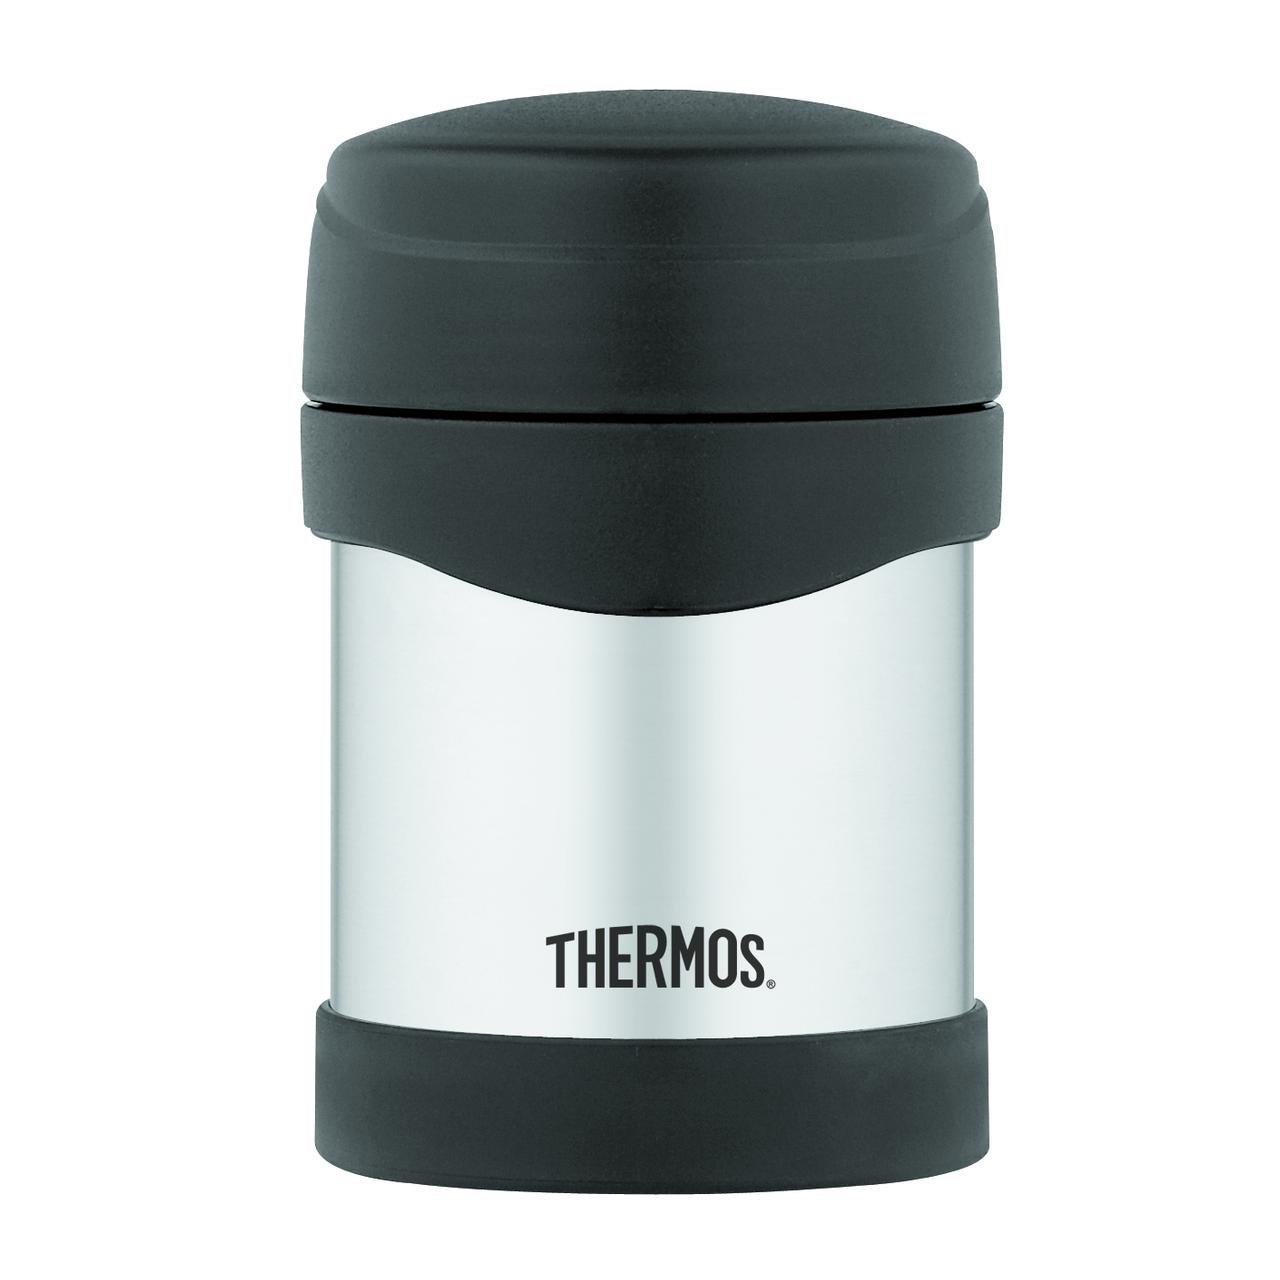 Thermos Add A Cup Beverage Insulated Vacuum Bottle